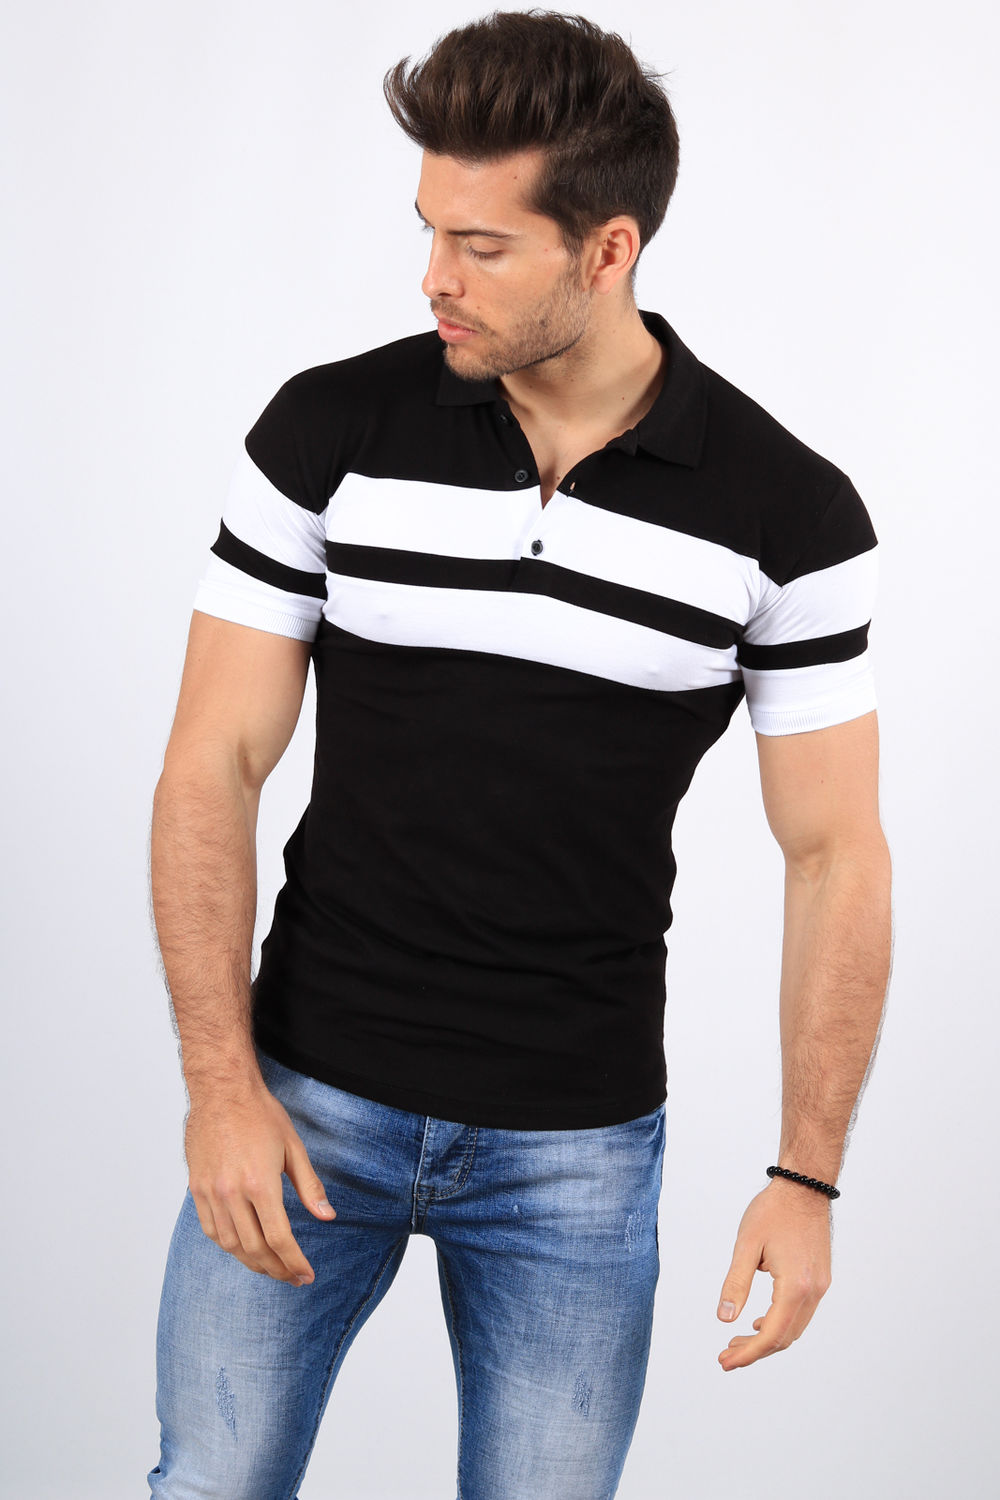 434 Polo Noir Homme Bande Blanche eDWE2H9IY